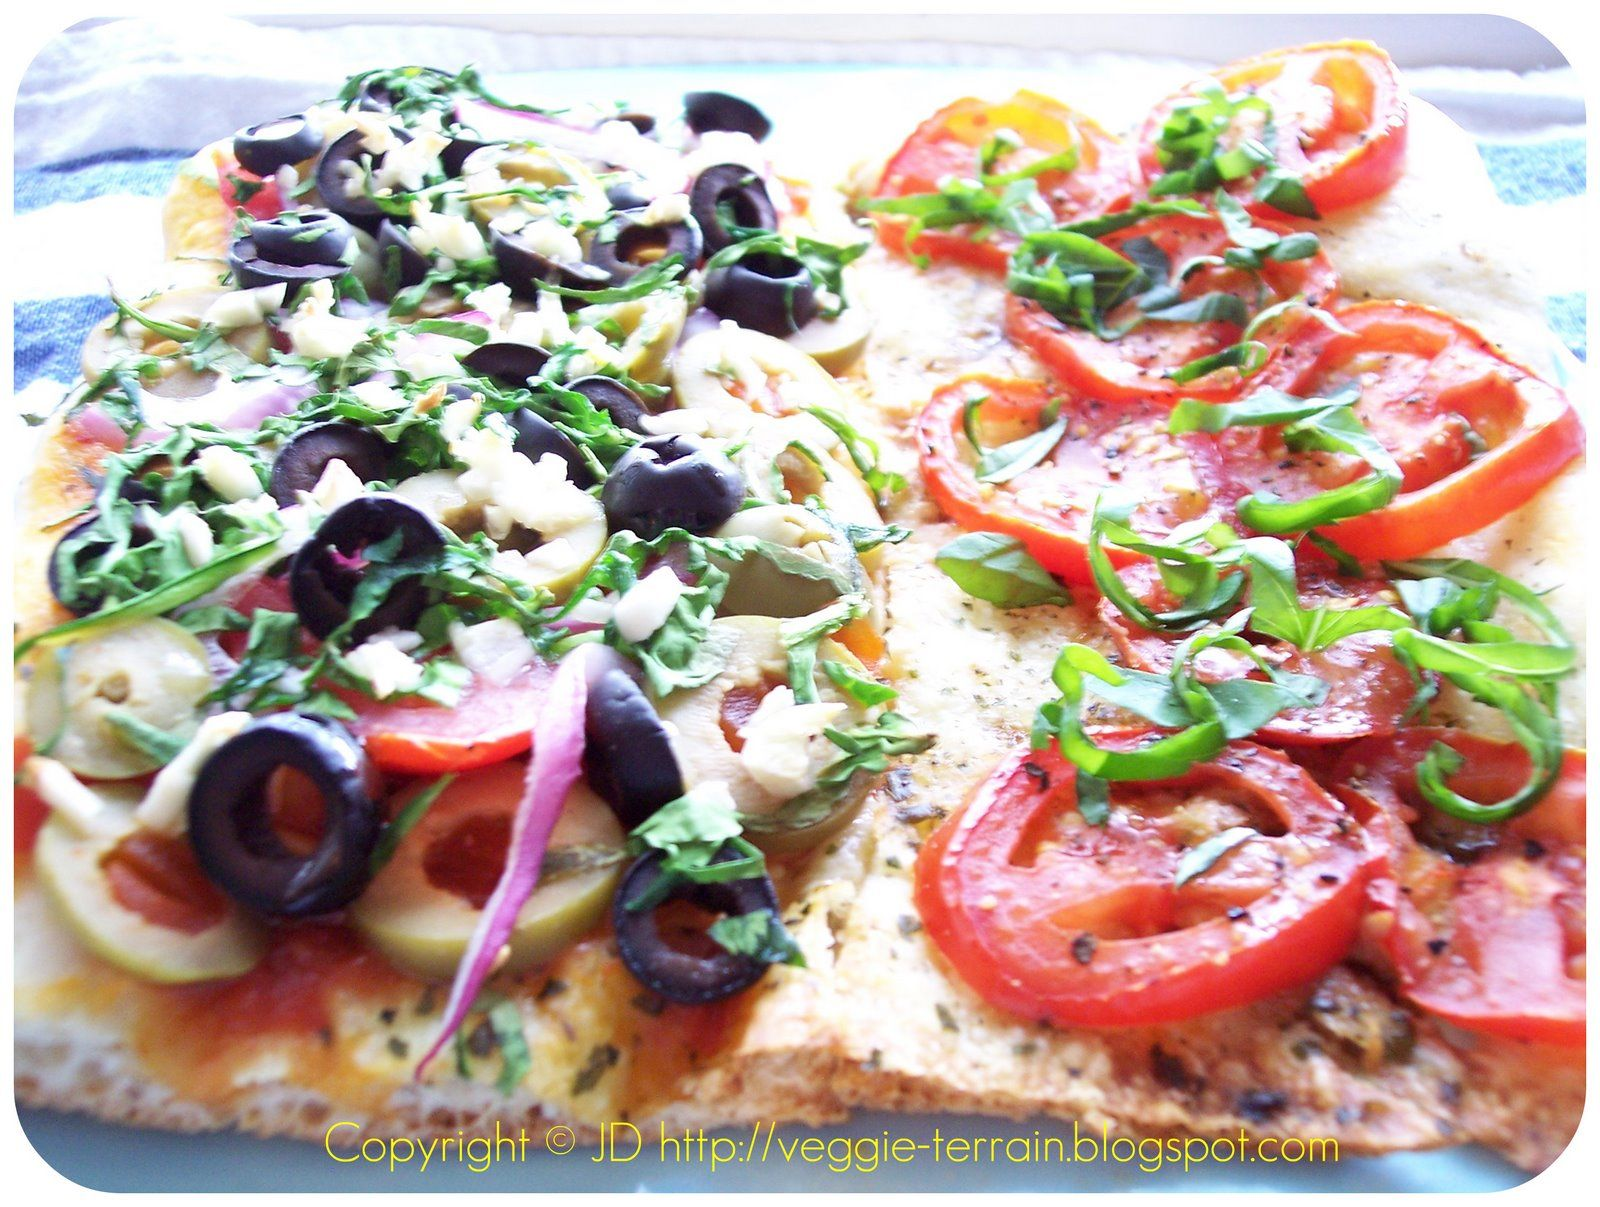 Cheese-Less Flatbread Pizzas: They're Re-Vegan-Diculous!